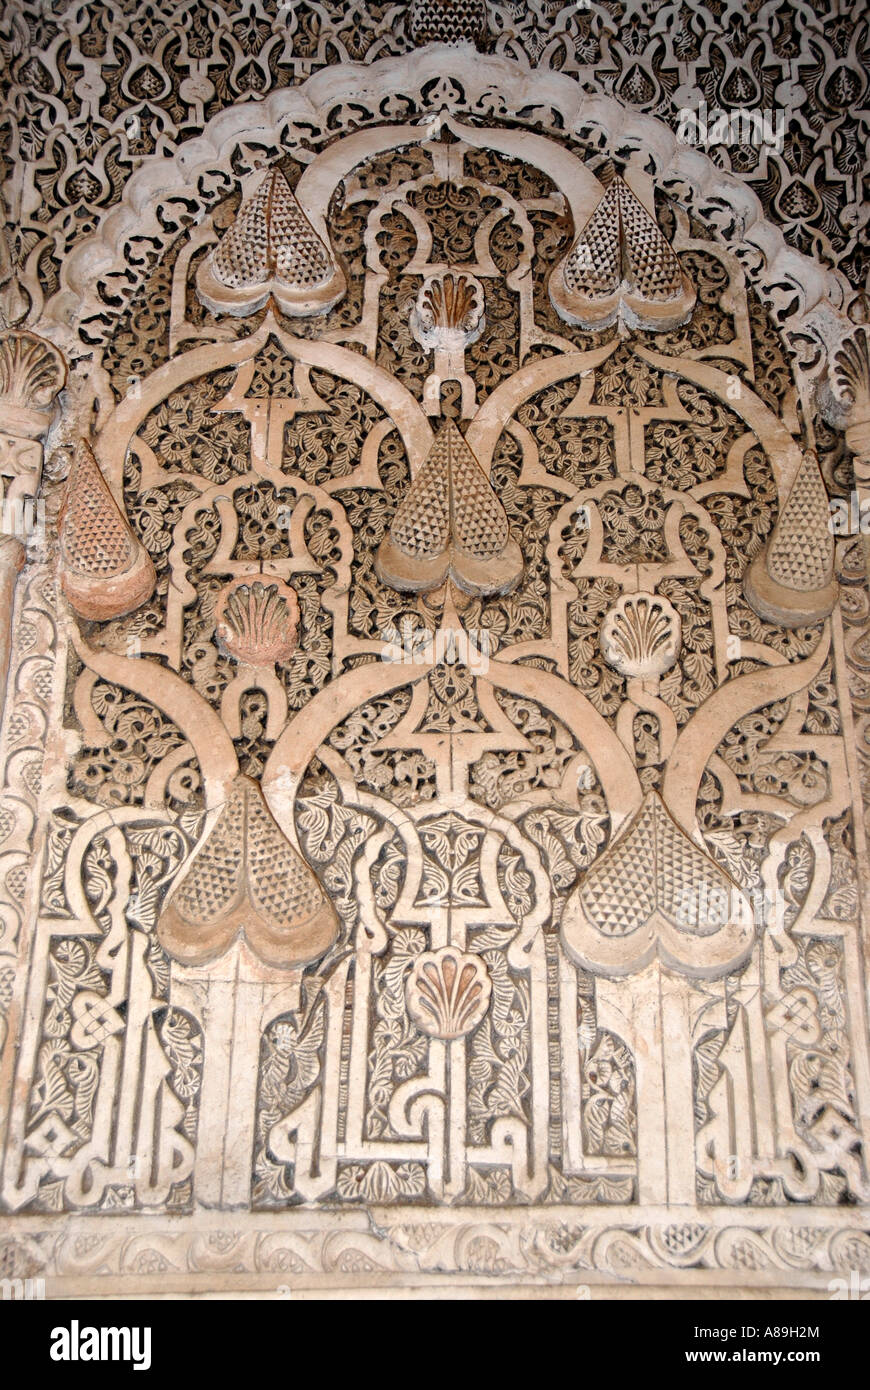 Oriental detail of with fine stucco richly decorated mihrab Medersa Ali Ben Youssef medina Marrakech Morocco - Stock Image